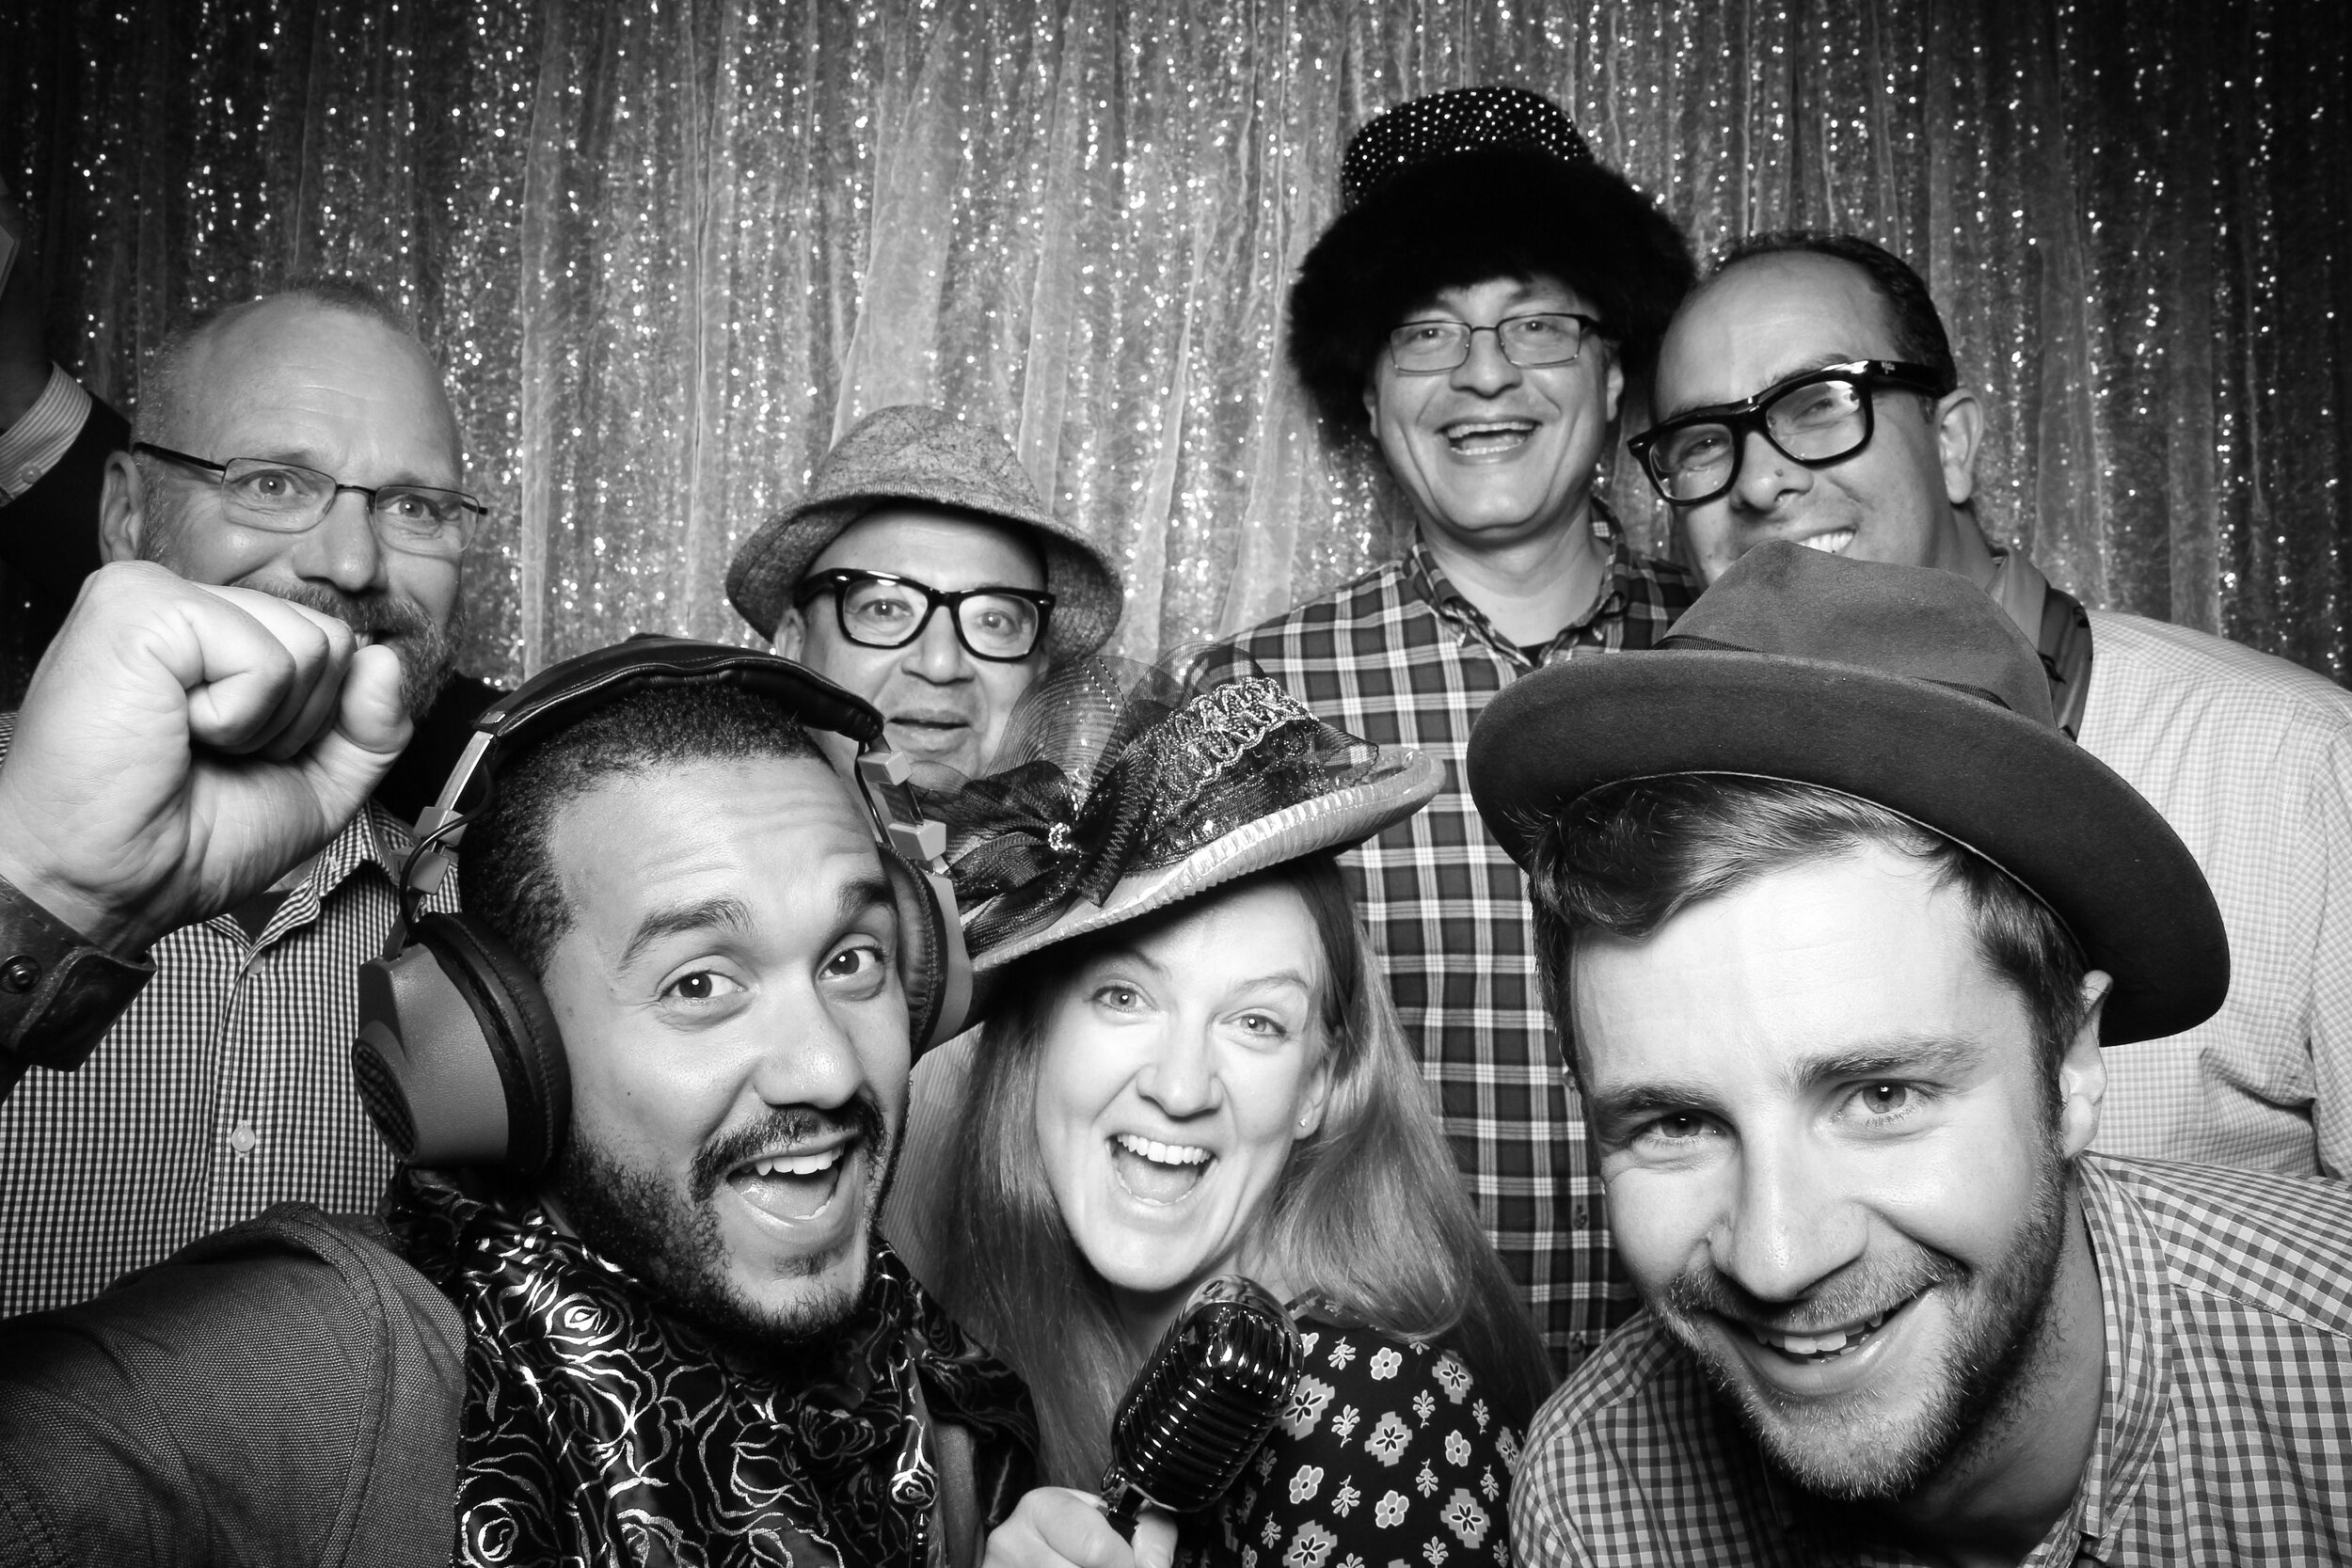 Chicago_Vintage_Wedding_Photobooth_House_of_Blues_13.jpg